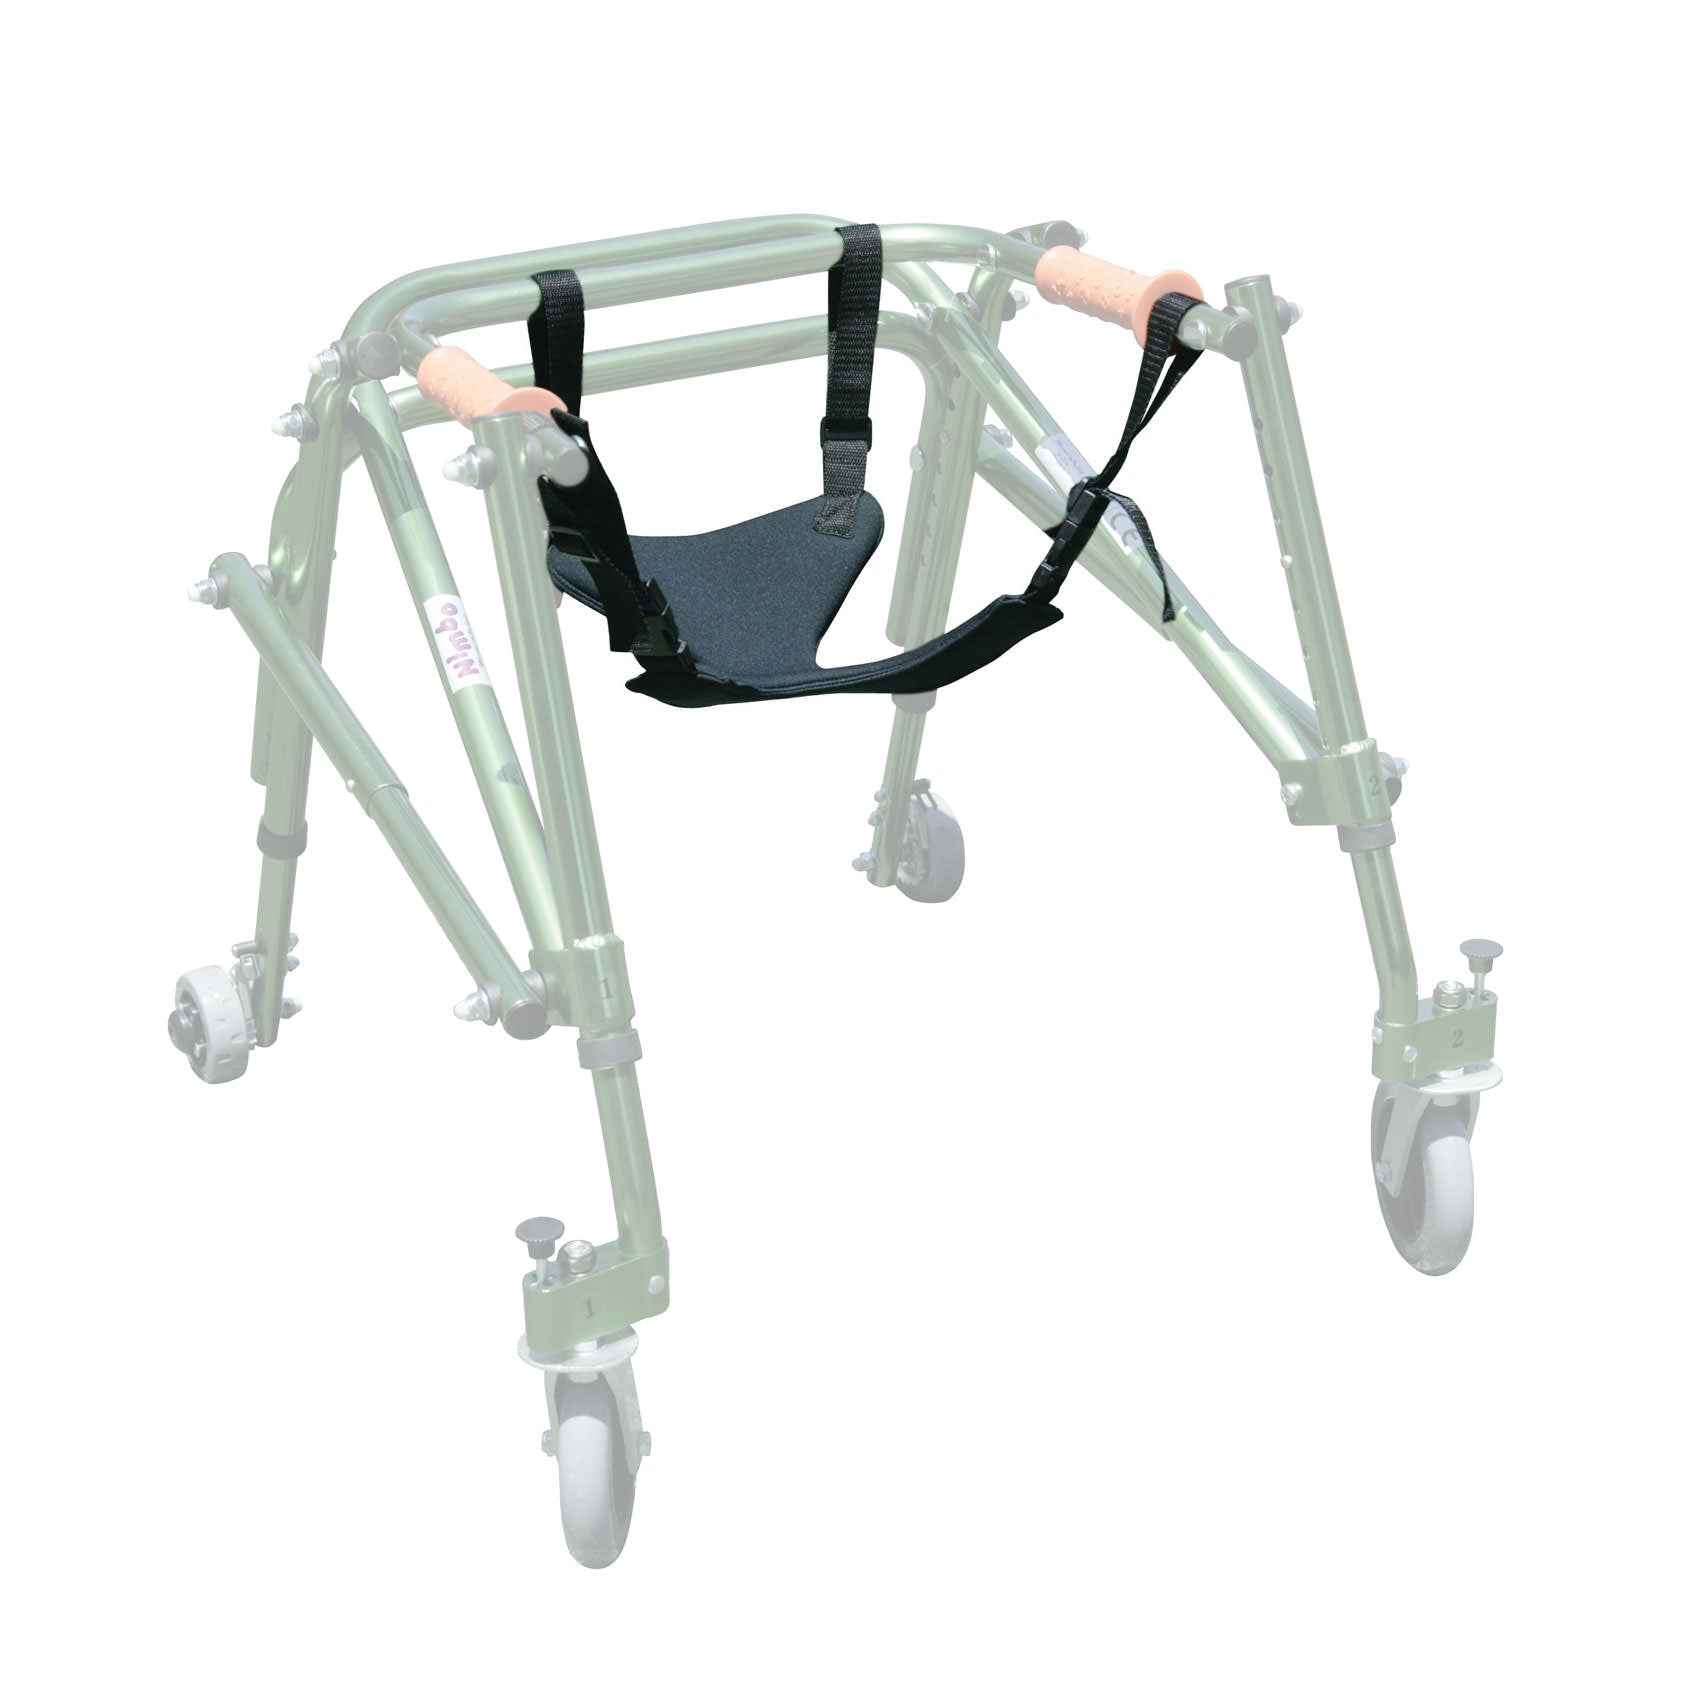 Seat Harness for all Wenzelite Safety Rollers and Nimbo Walkers